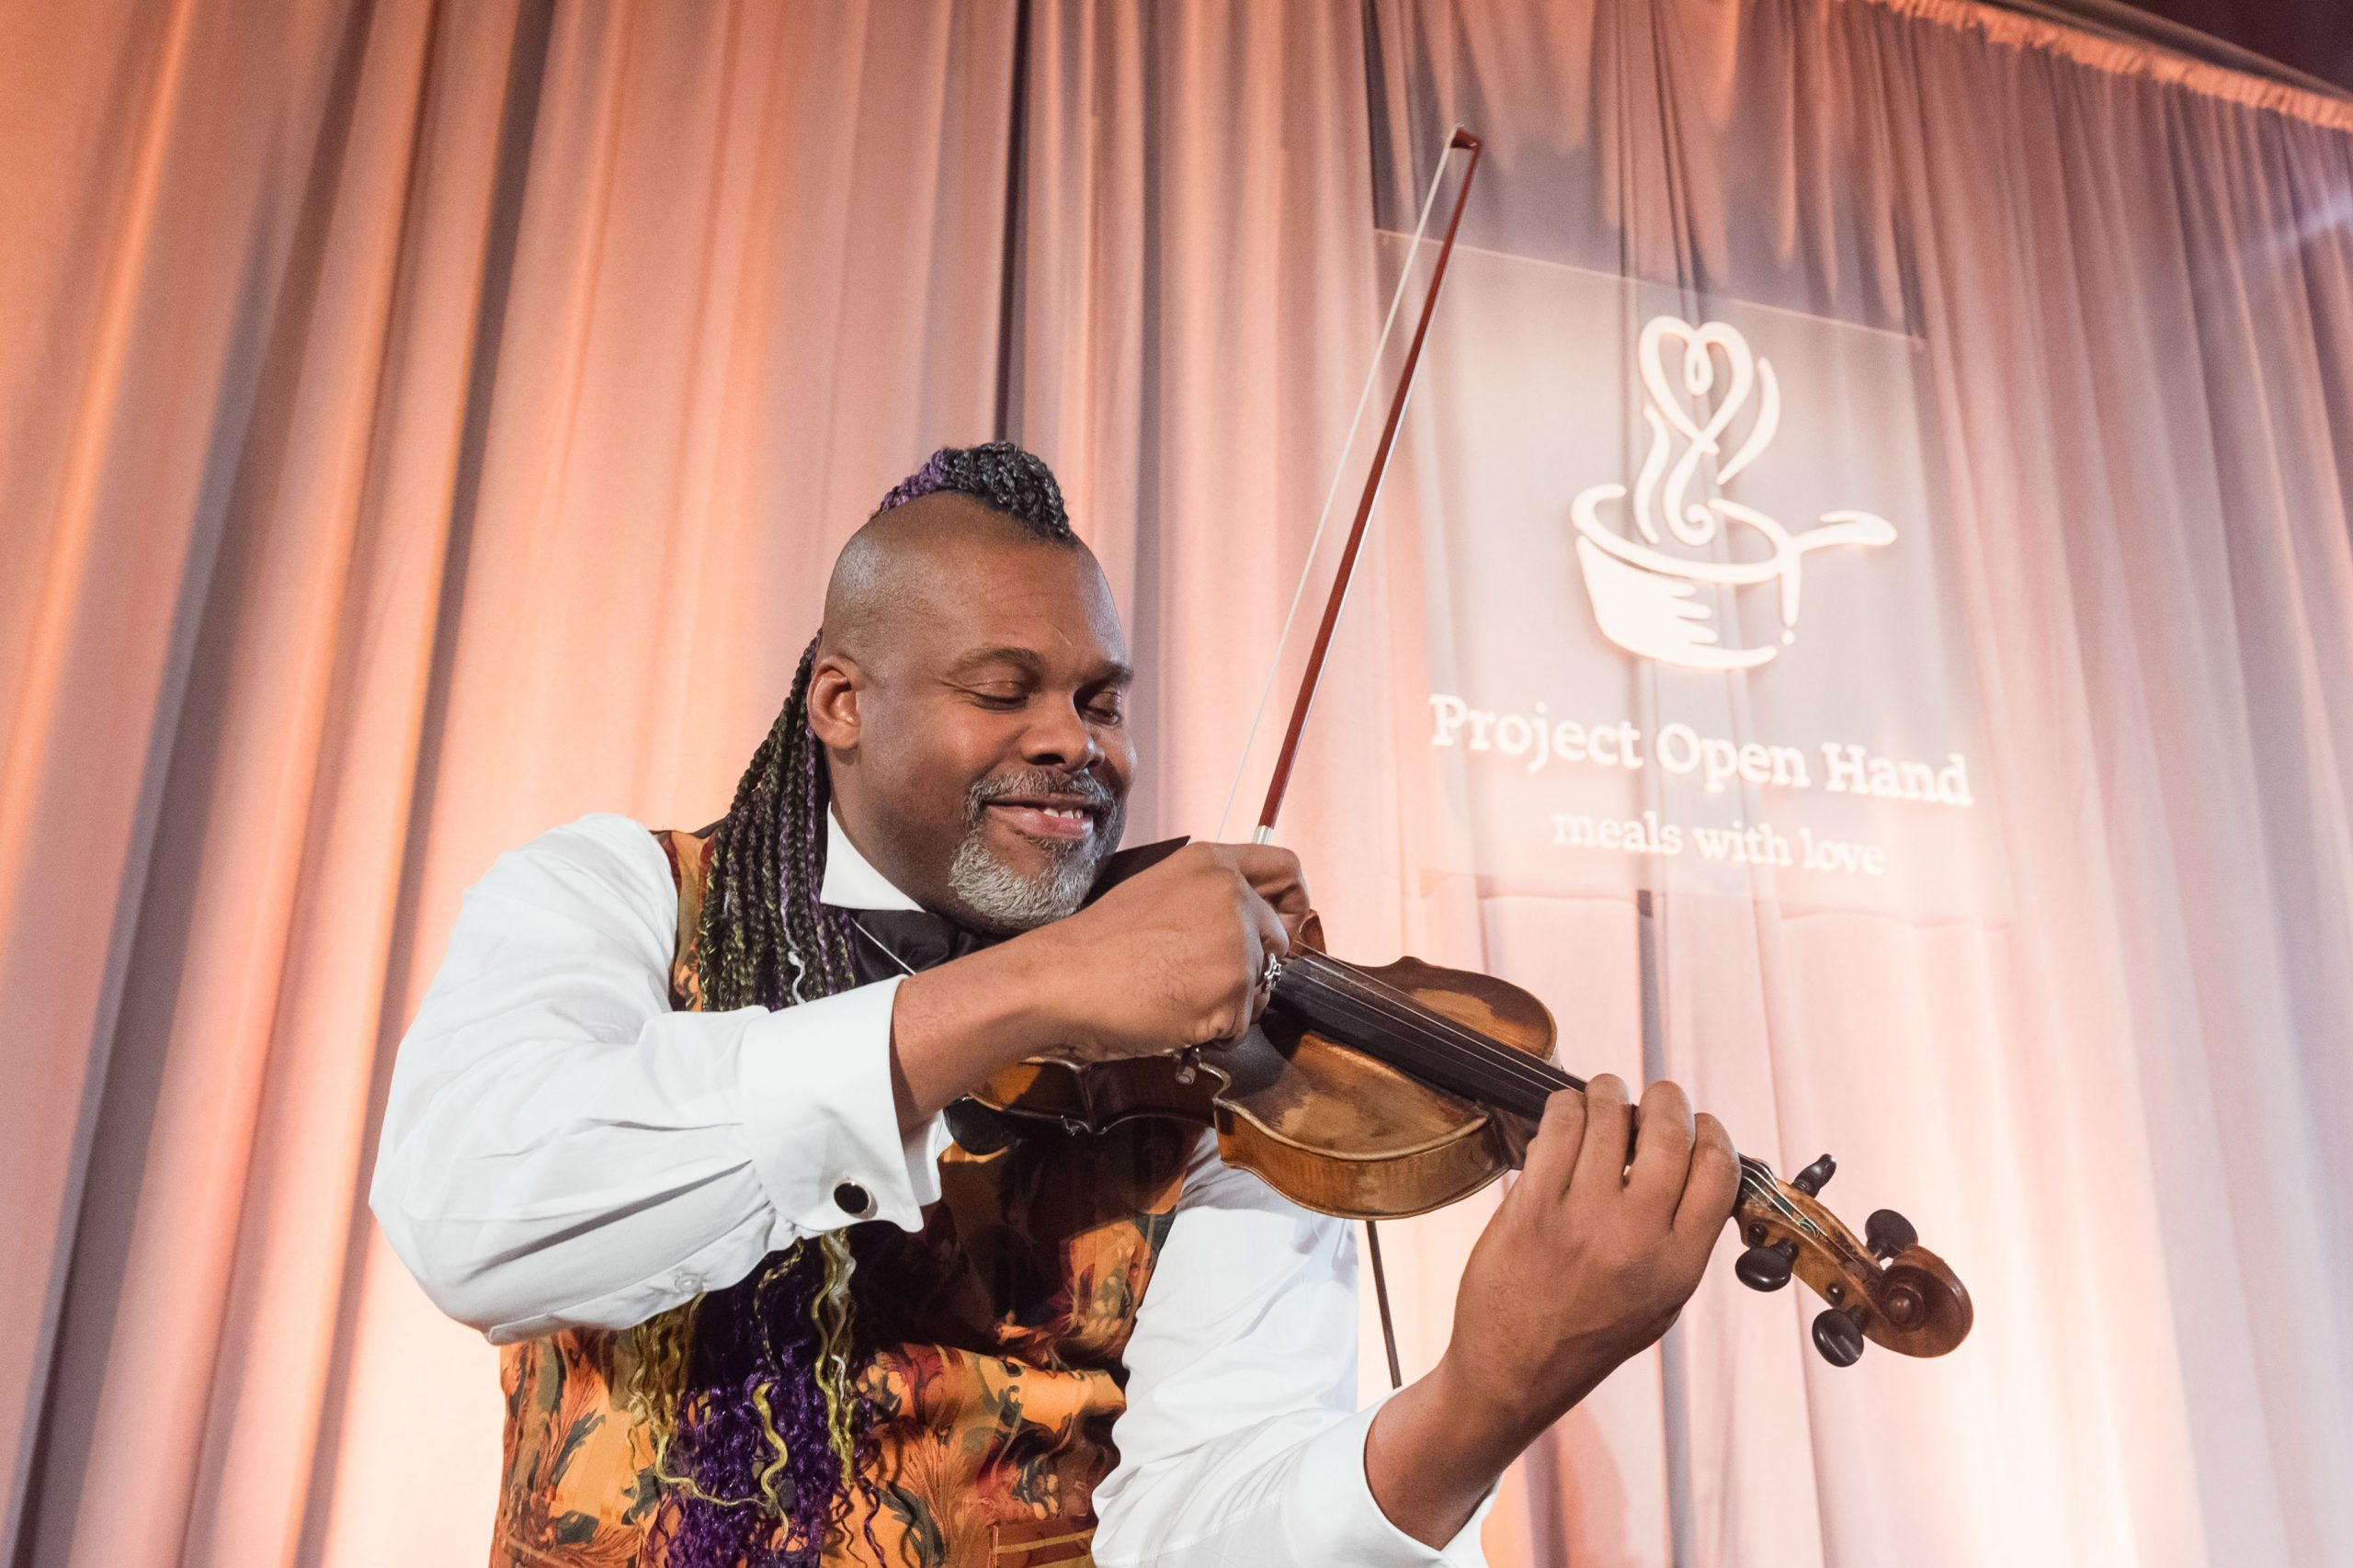 Entertainer Kippy Marks performing with a violin on stage.